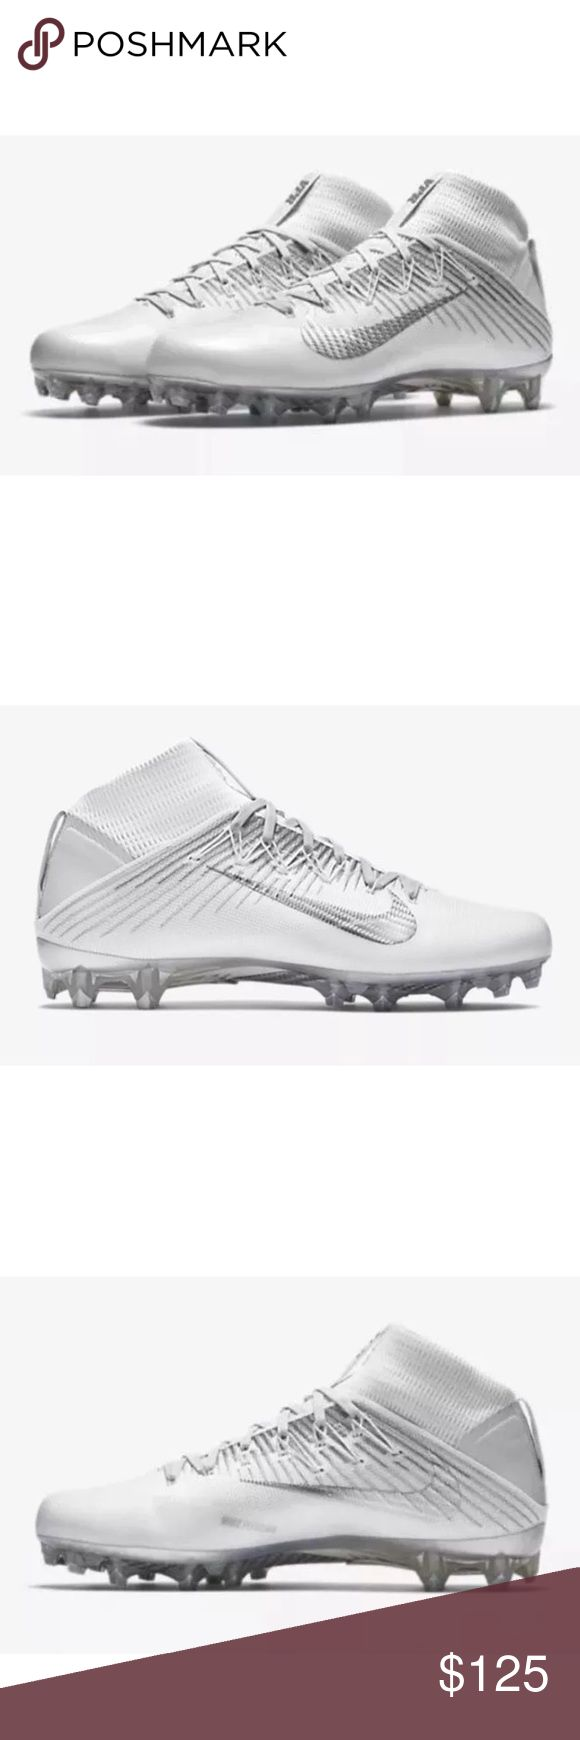 🏈 Nike Vapor Untouchable 2 WHITE Football Cleats New without Box.   I also have these in my closet in black. Nike Shoes Athletic Shoes